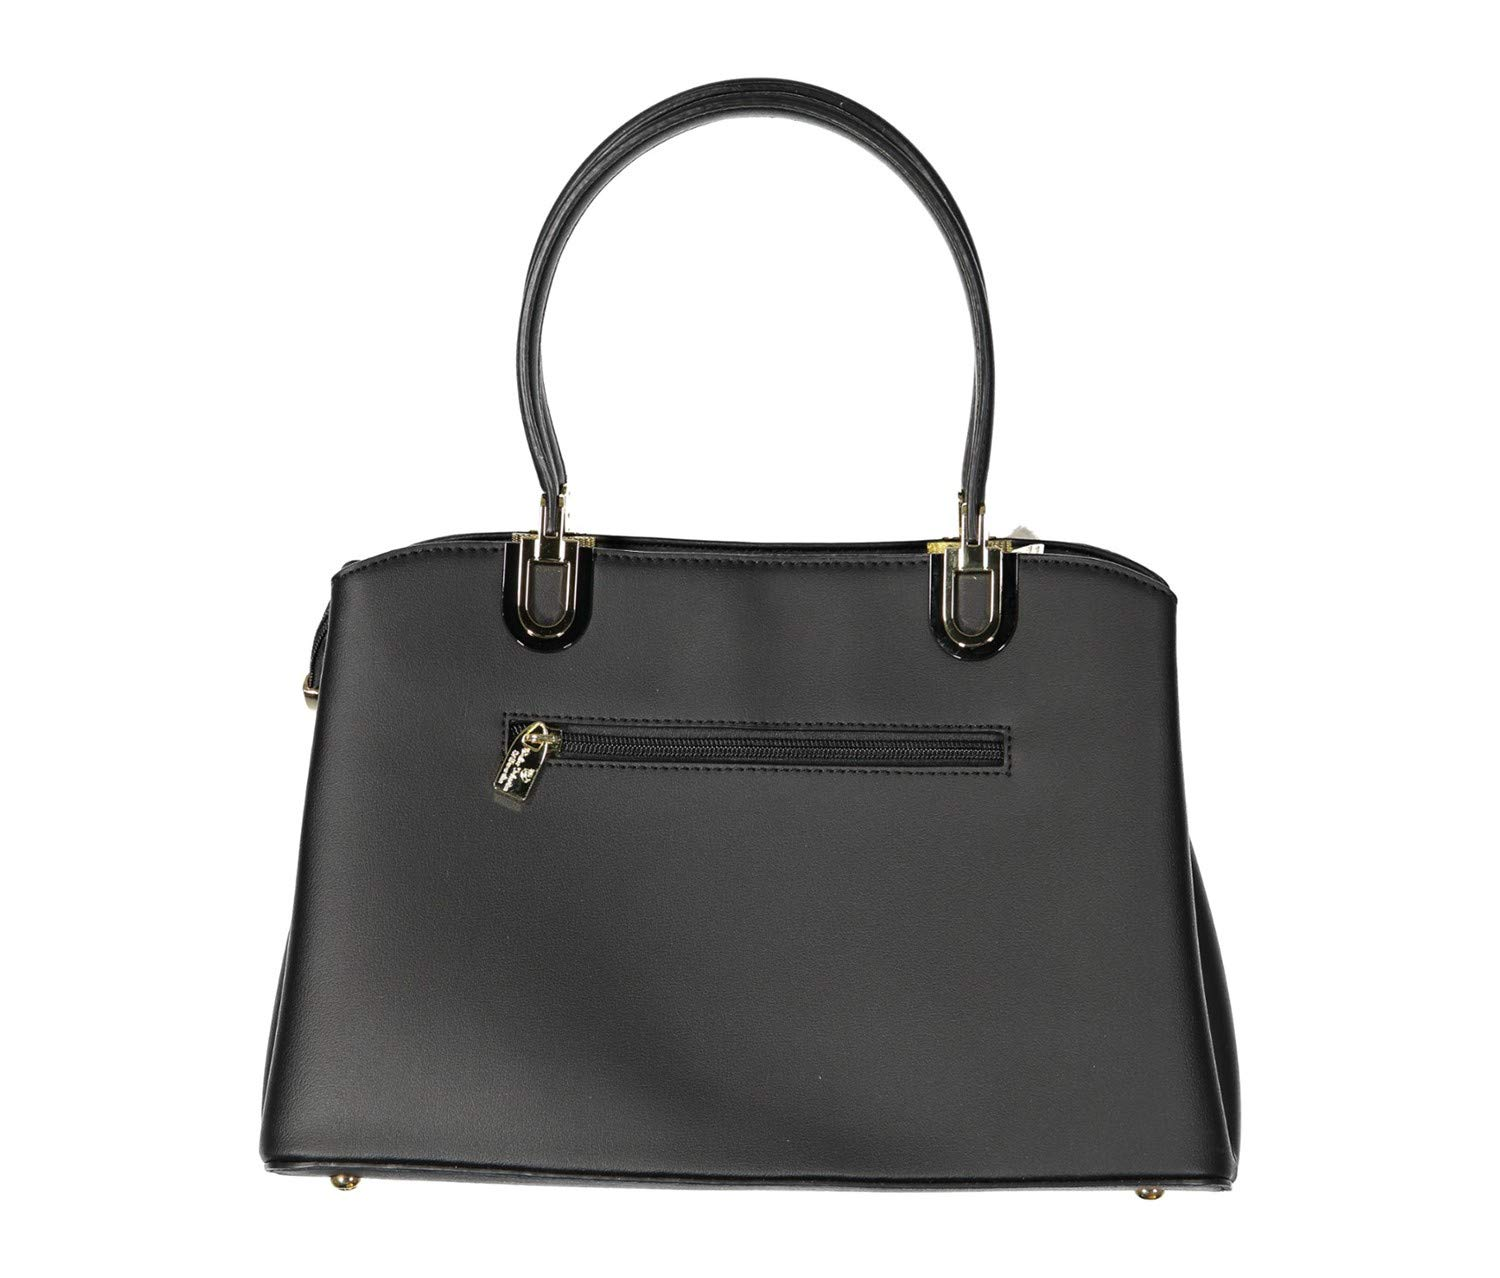 01f6a76f2b Walter Valentino Bag For Women